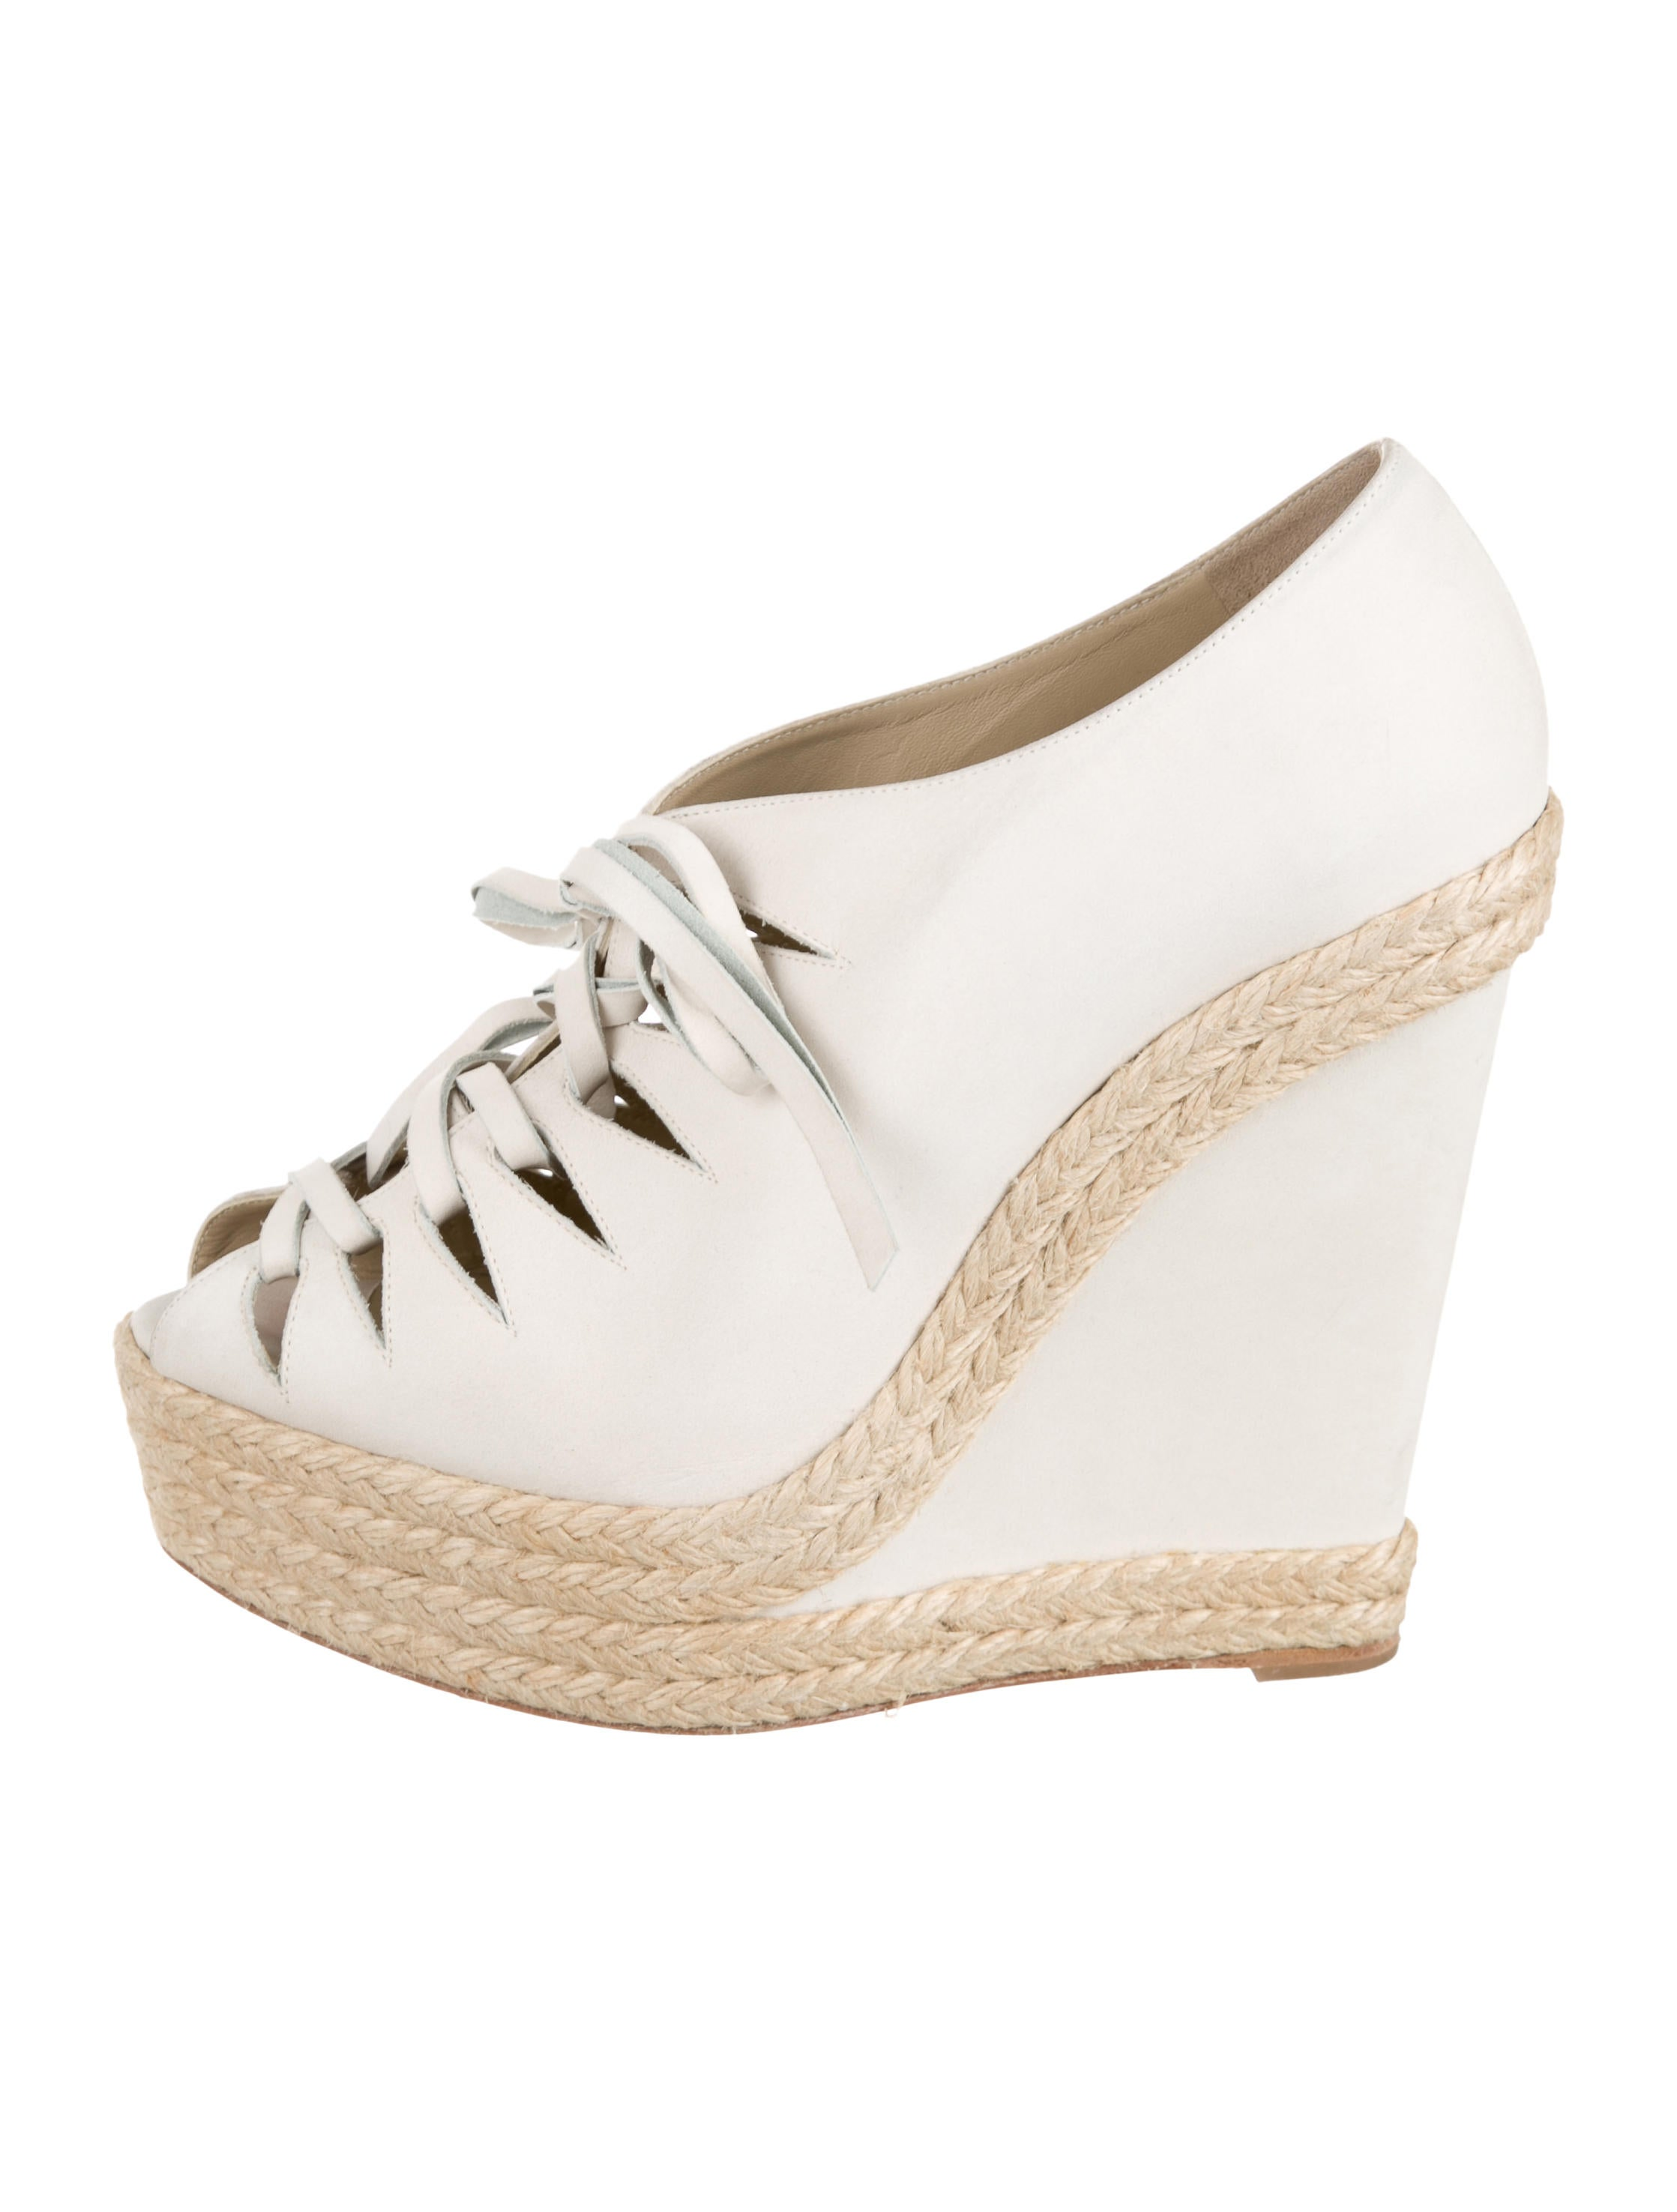 Christian Louboutin Platform Espadrille Wedges - Shoes - CHT43230 ...